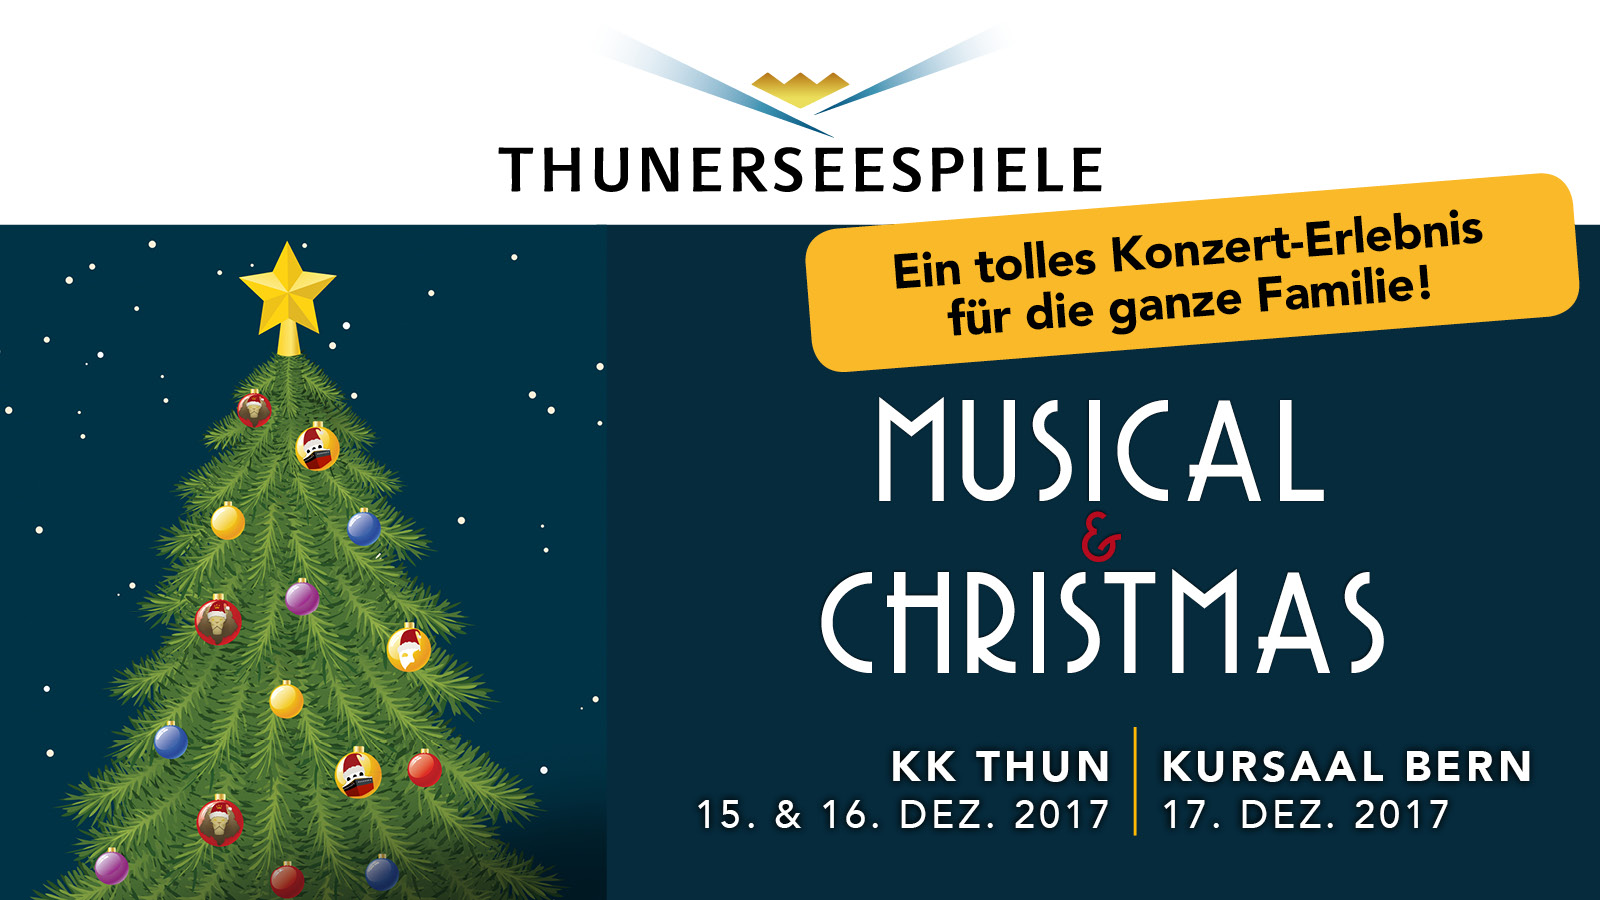 Thunerseespiele: Musical & Christmas 2017